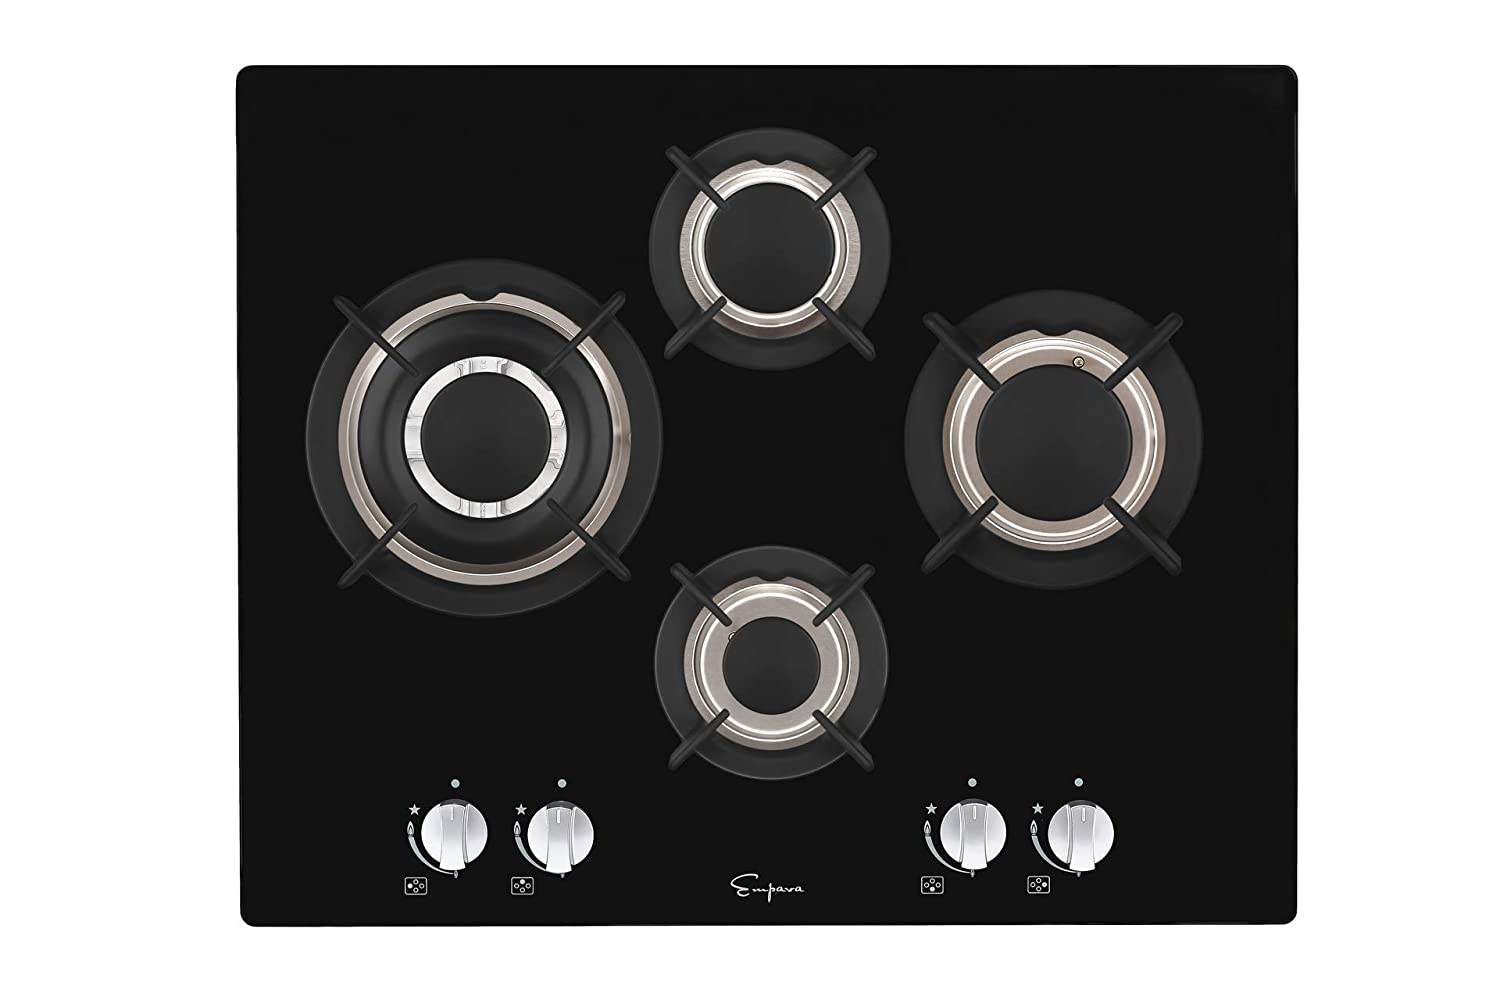 "Empava 24"" 4 Italy Imported Sabaf Burners NG/LPG Convertible Gas Stove Cooktop Tempered Glass Black EMPV-4L6A"